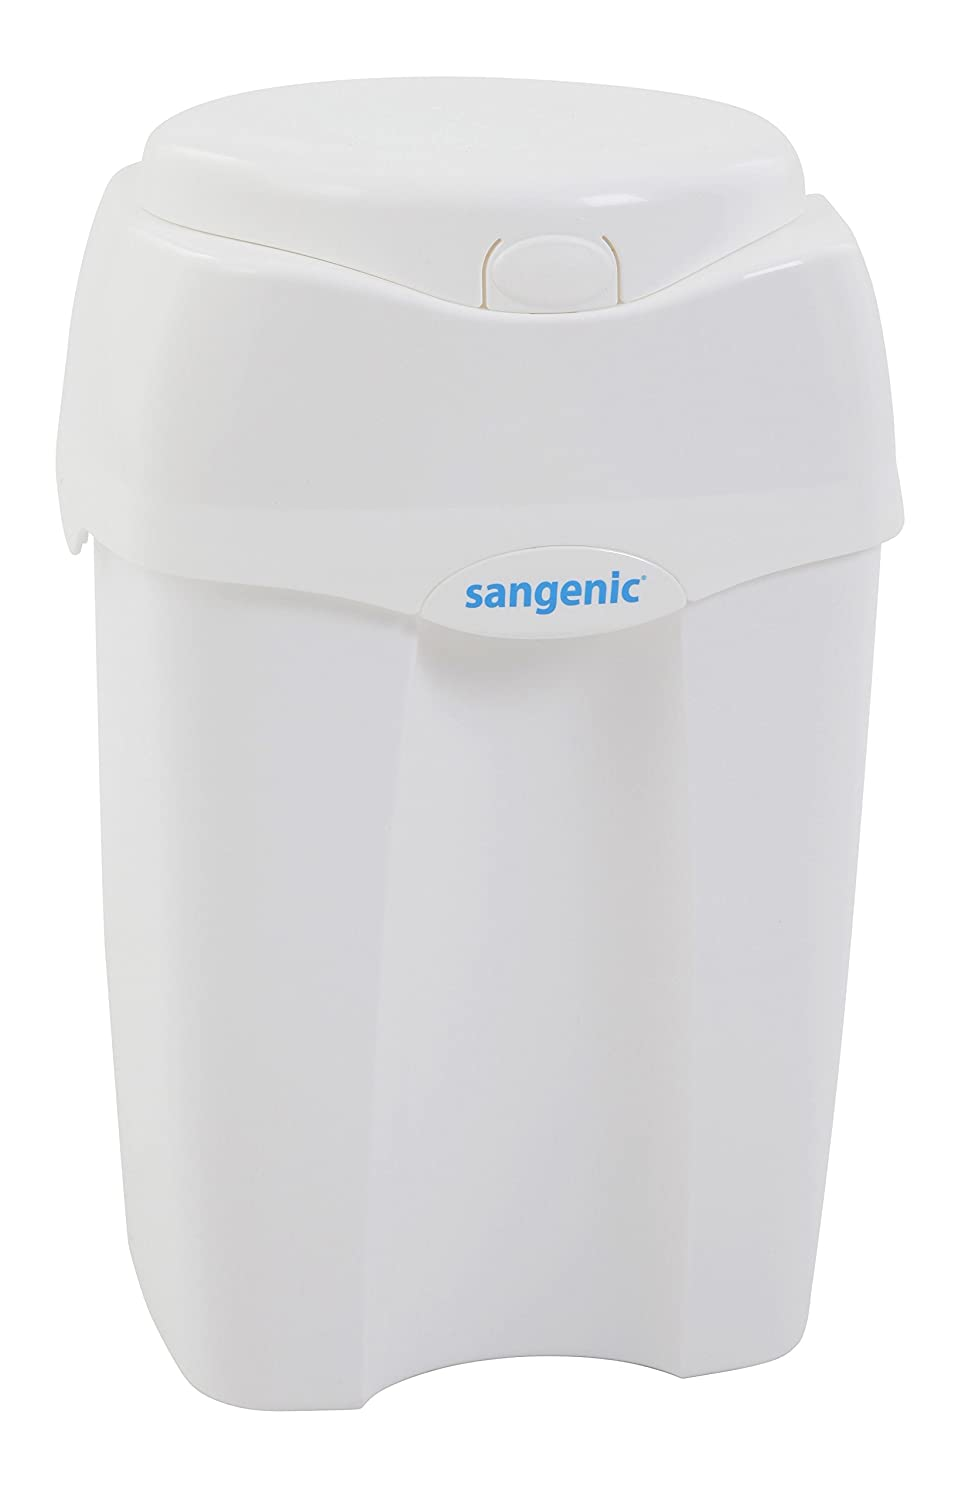 Amazon.com : Sangenic Nursery Essentials Basic 75121102 Nappy Twister : Baby